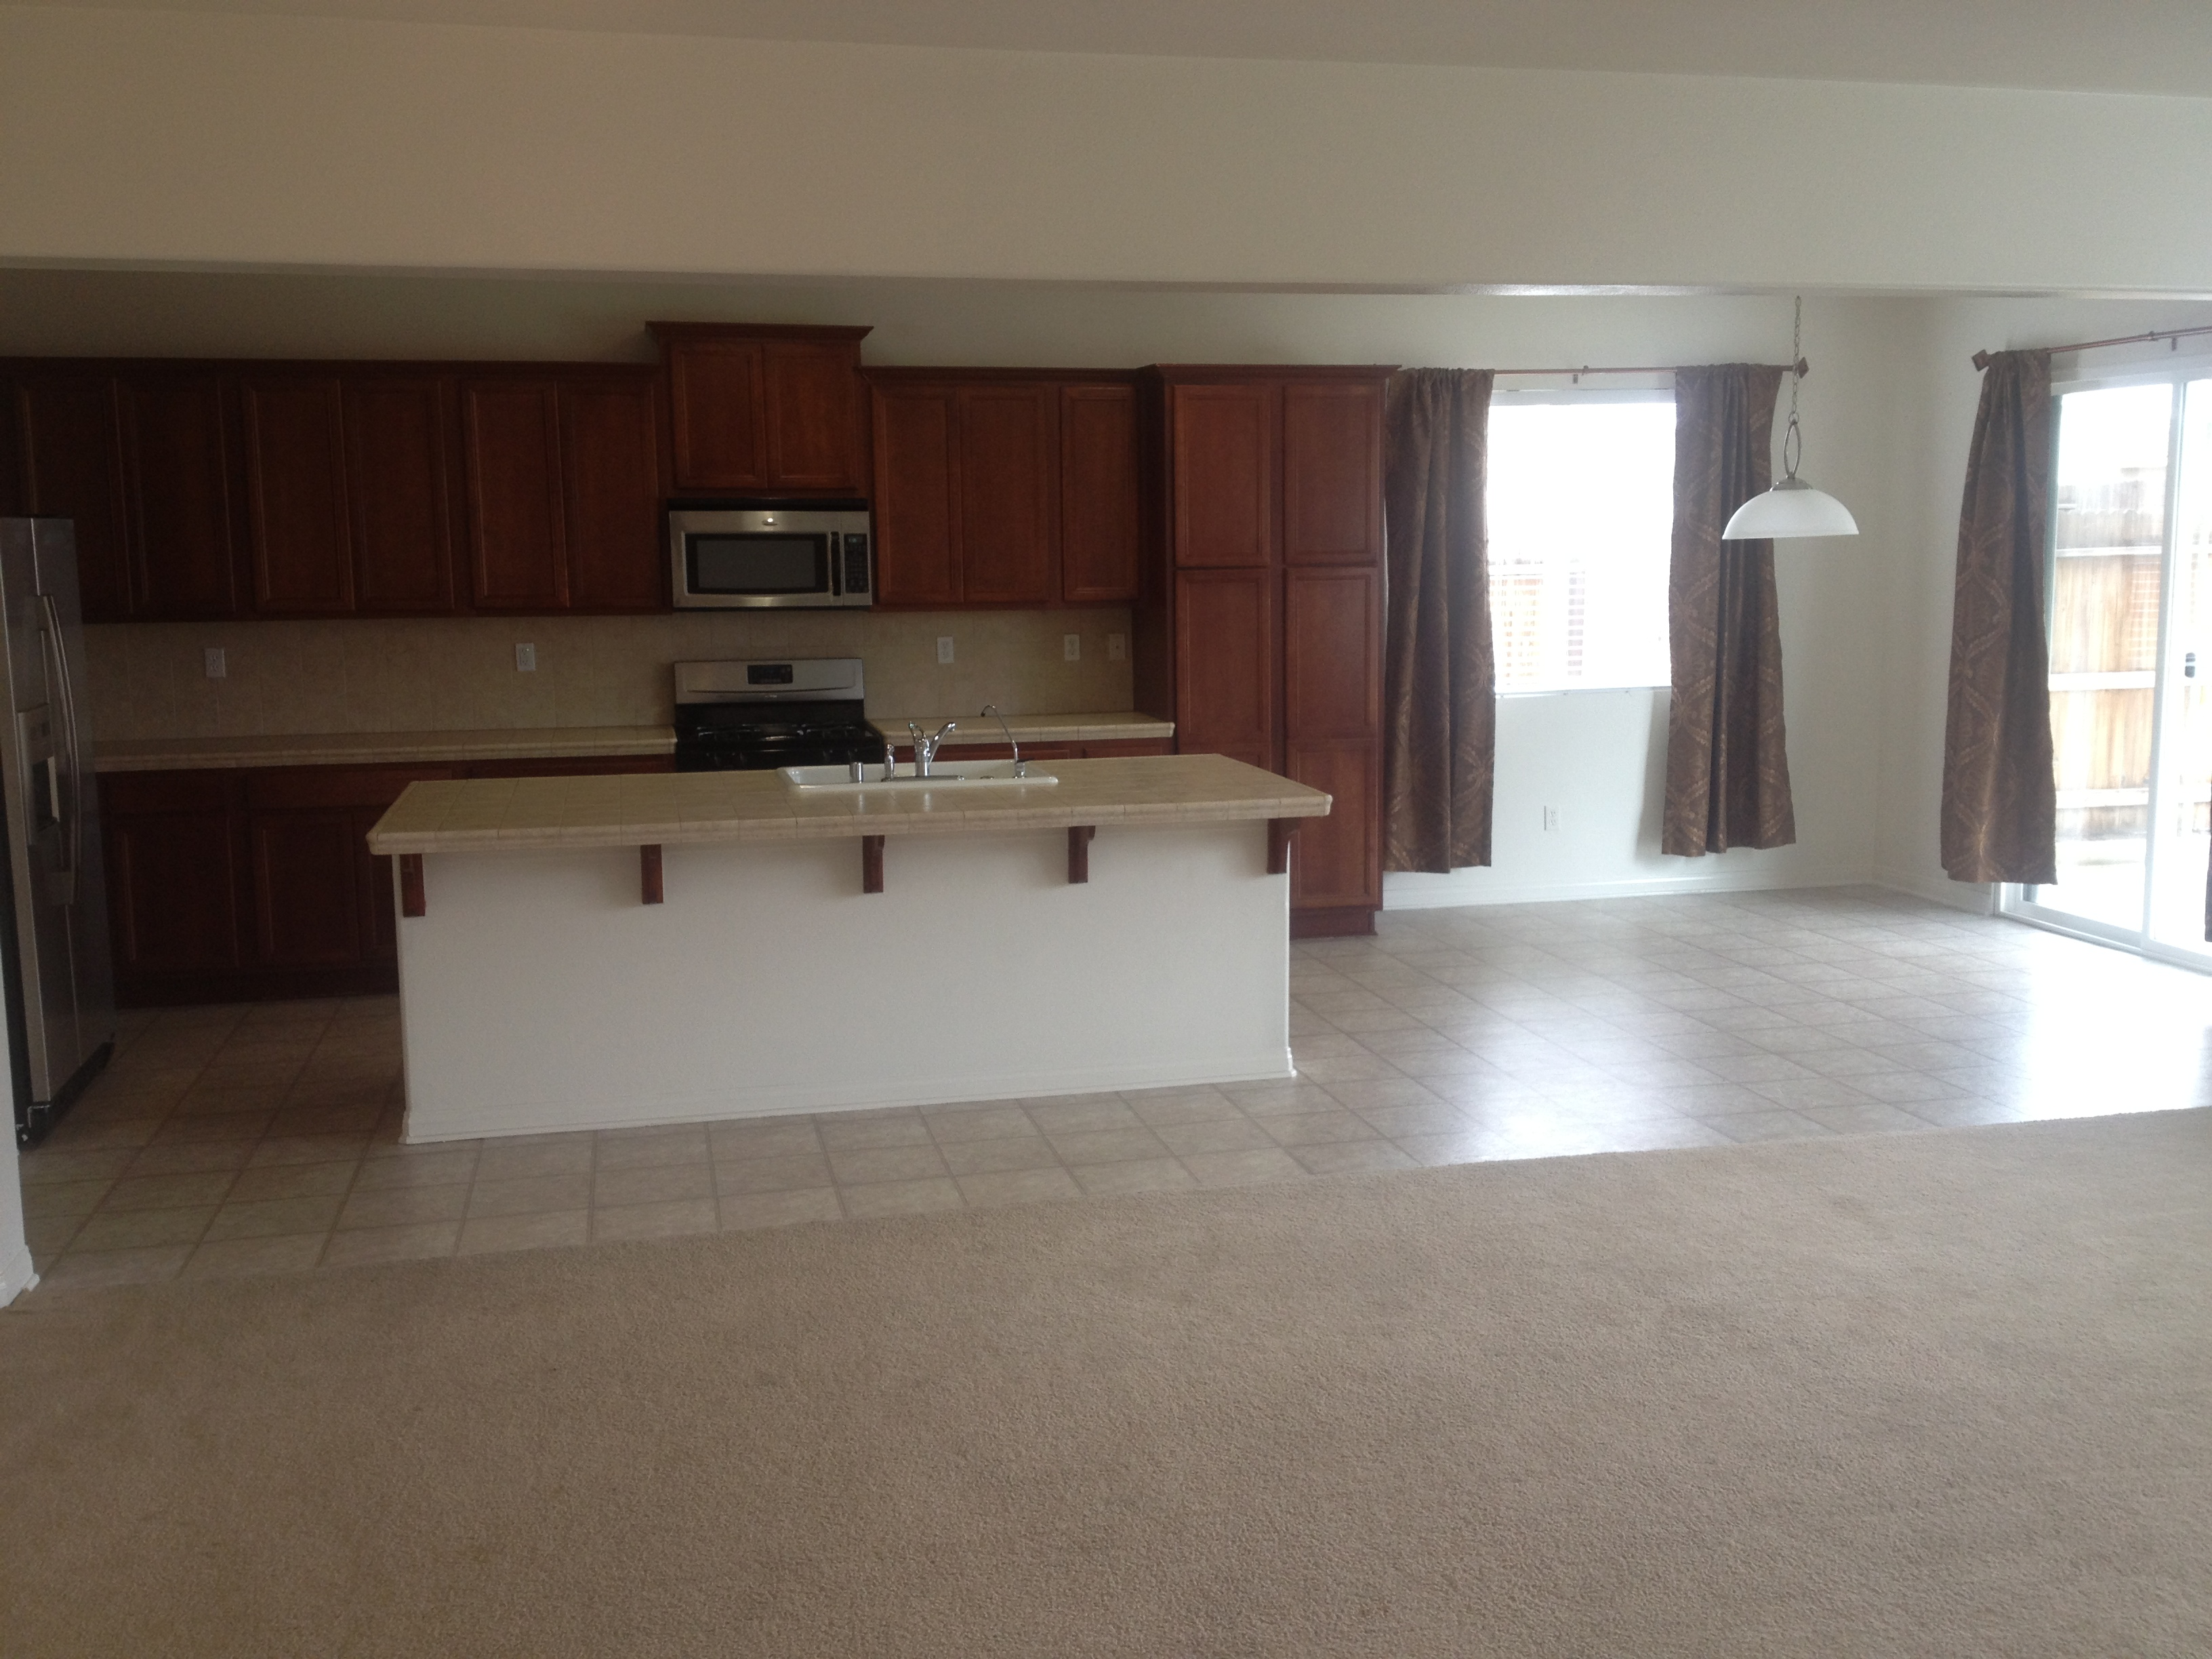 $1495 - 8016 boggs ct., bakersfield, ca 93313 southwest house for